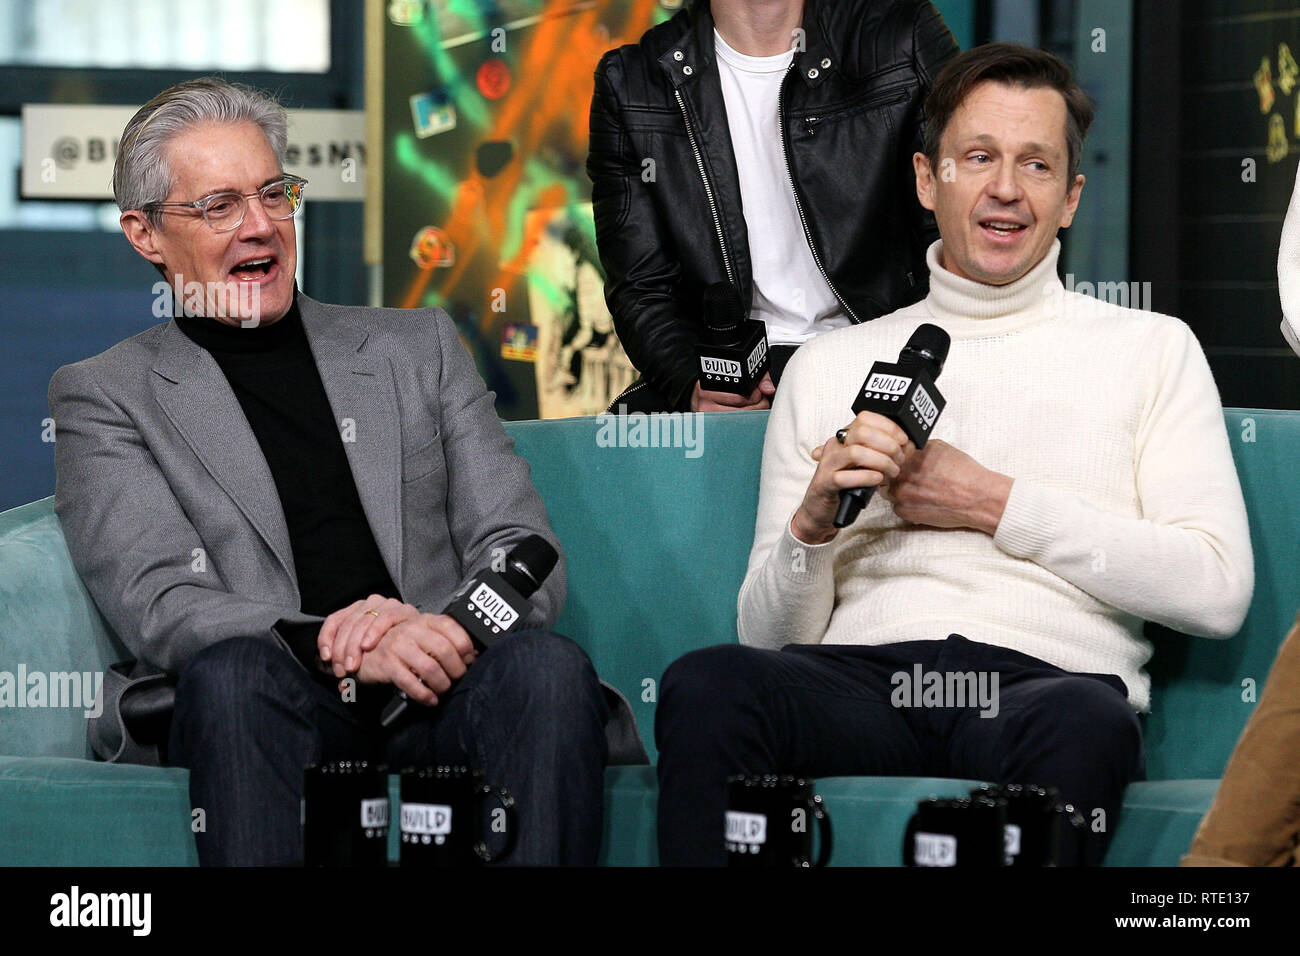 New York, USA. 28 Feb, 2019. Kyle McLaughlan, Keith Behrman at The Thursday, Feb 28, 2019 BUILD Series Inside Candids discussing the new film 'Giant Little Ones' at BUILD Studio in New York, USA. Credit: Steve Mack/S.D. Mack Pictures/Alamy Live News - Stock Image